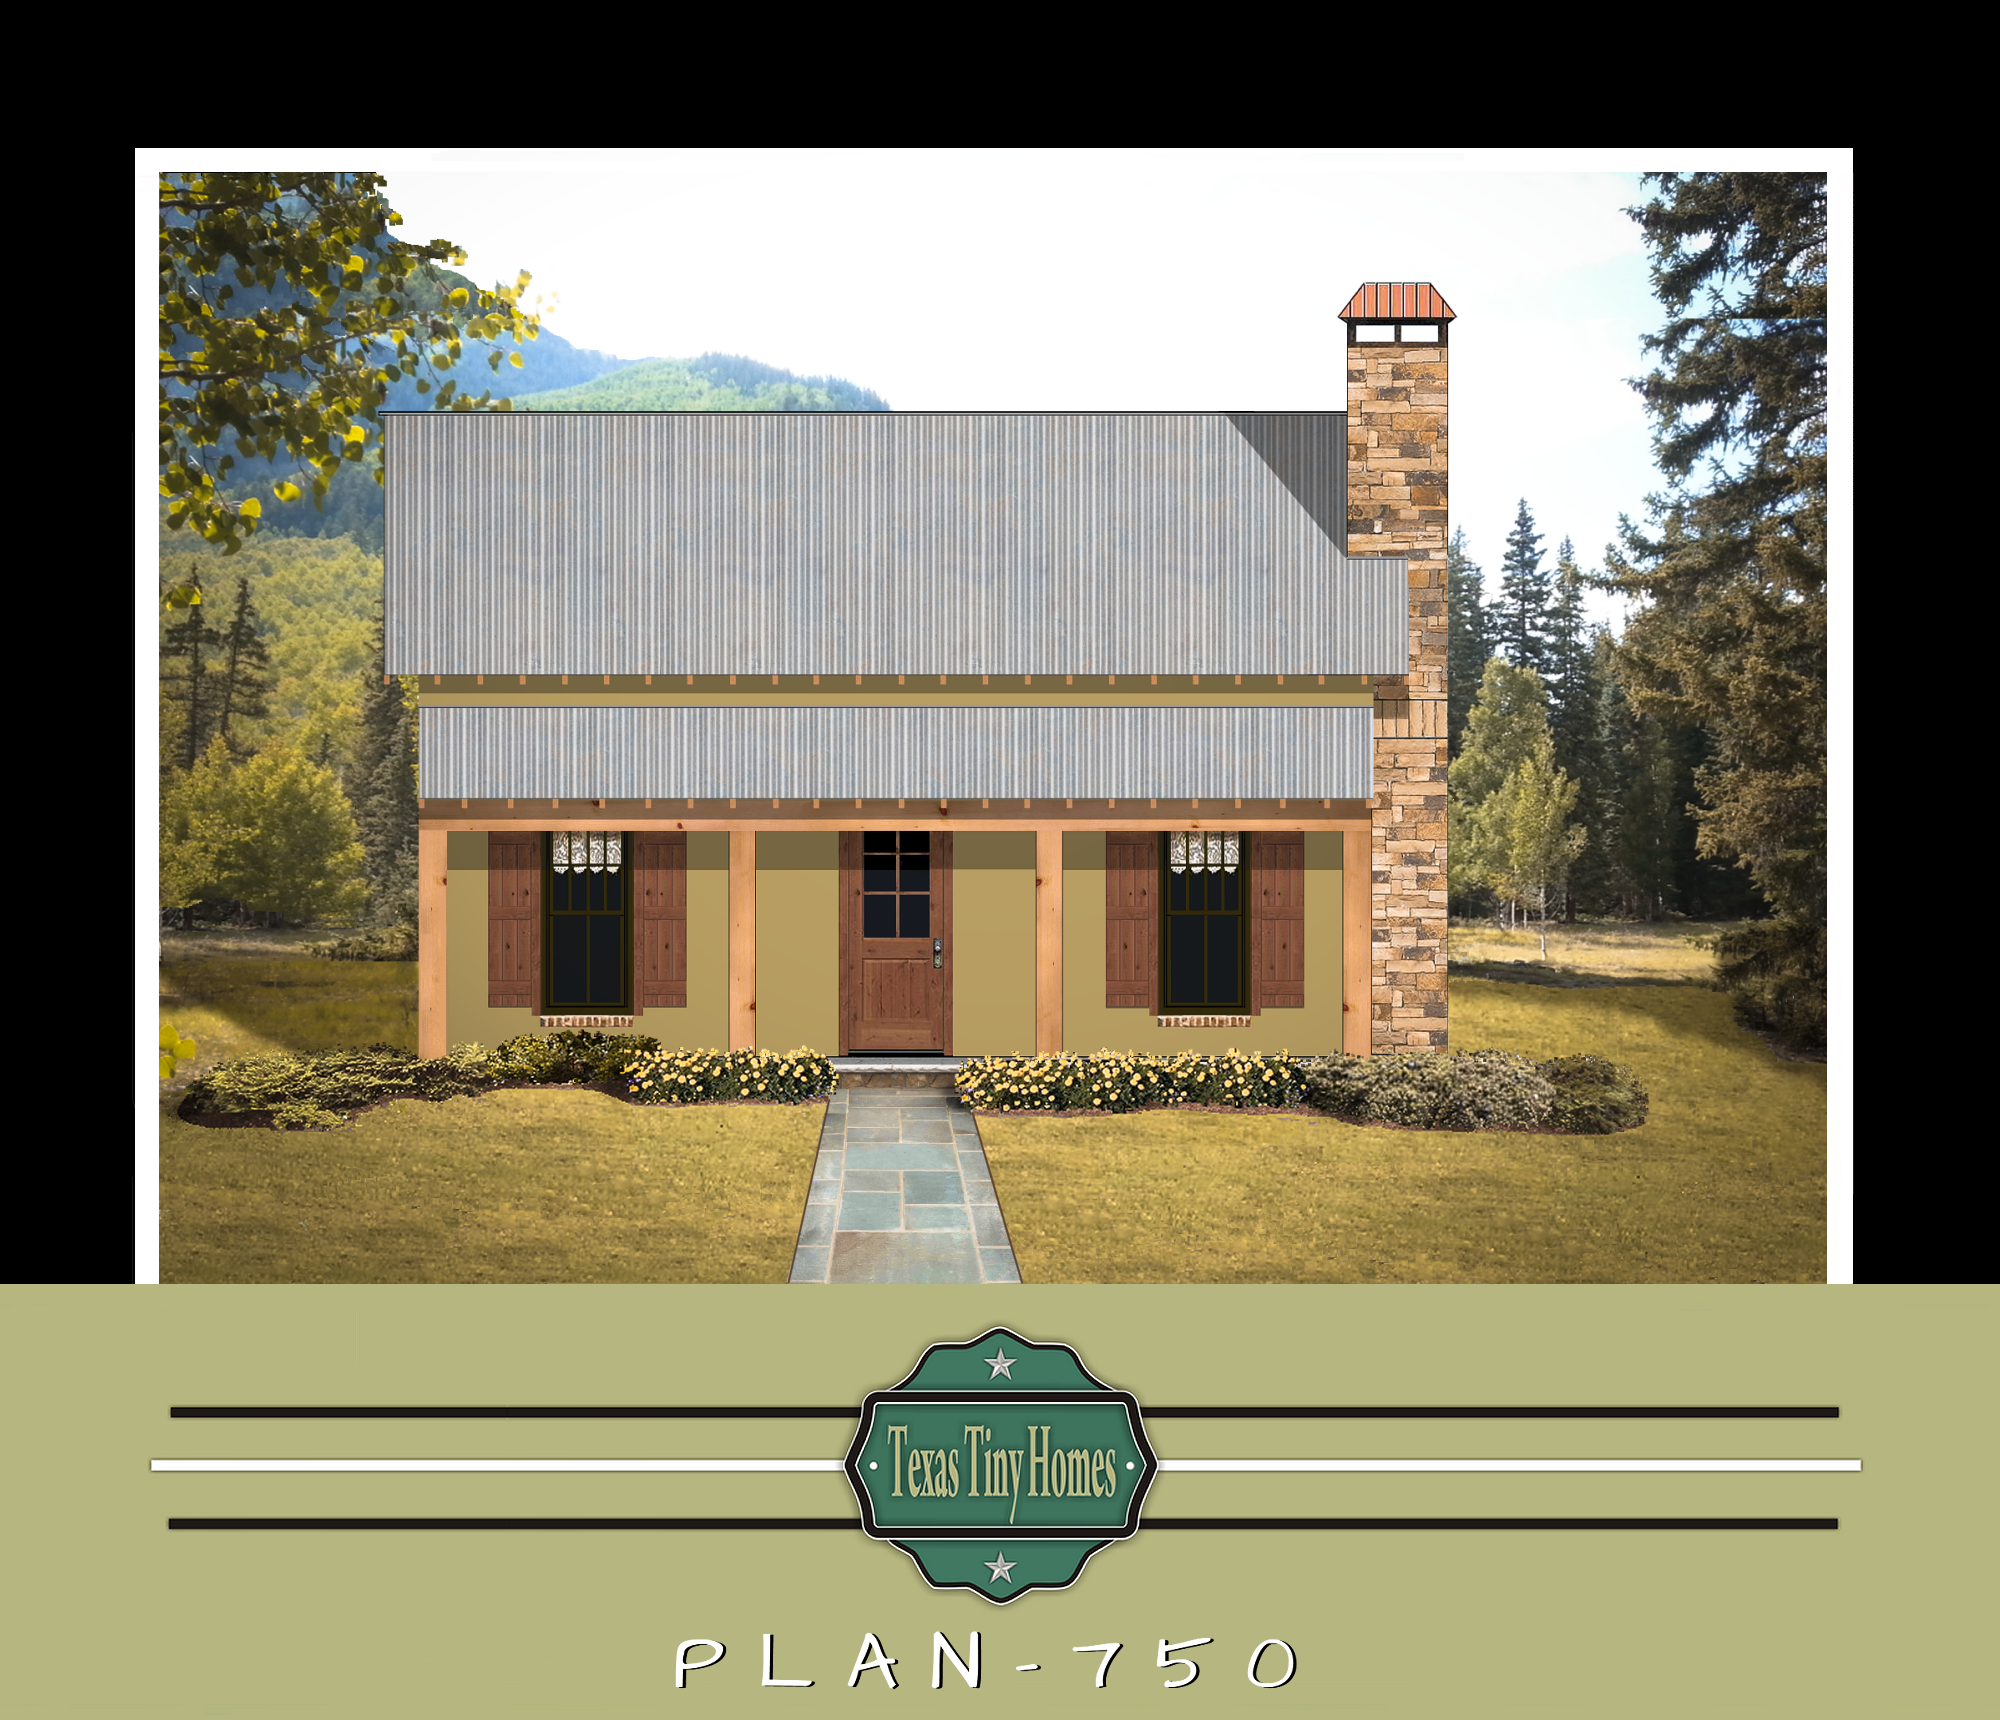 Texas tiny homes plan 750 Home builders com